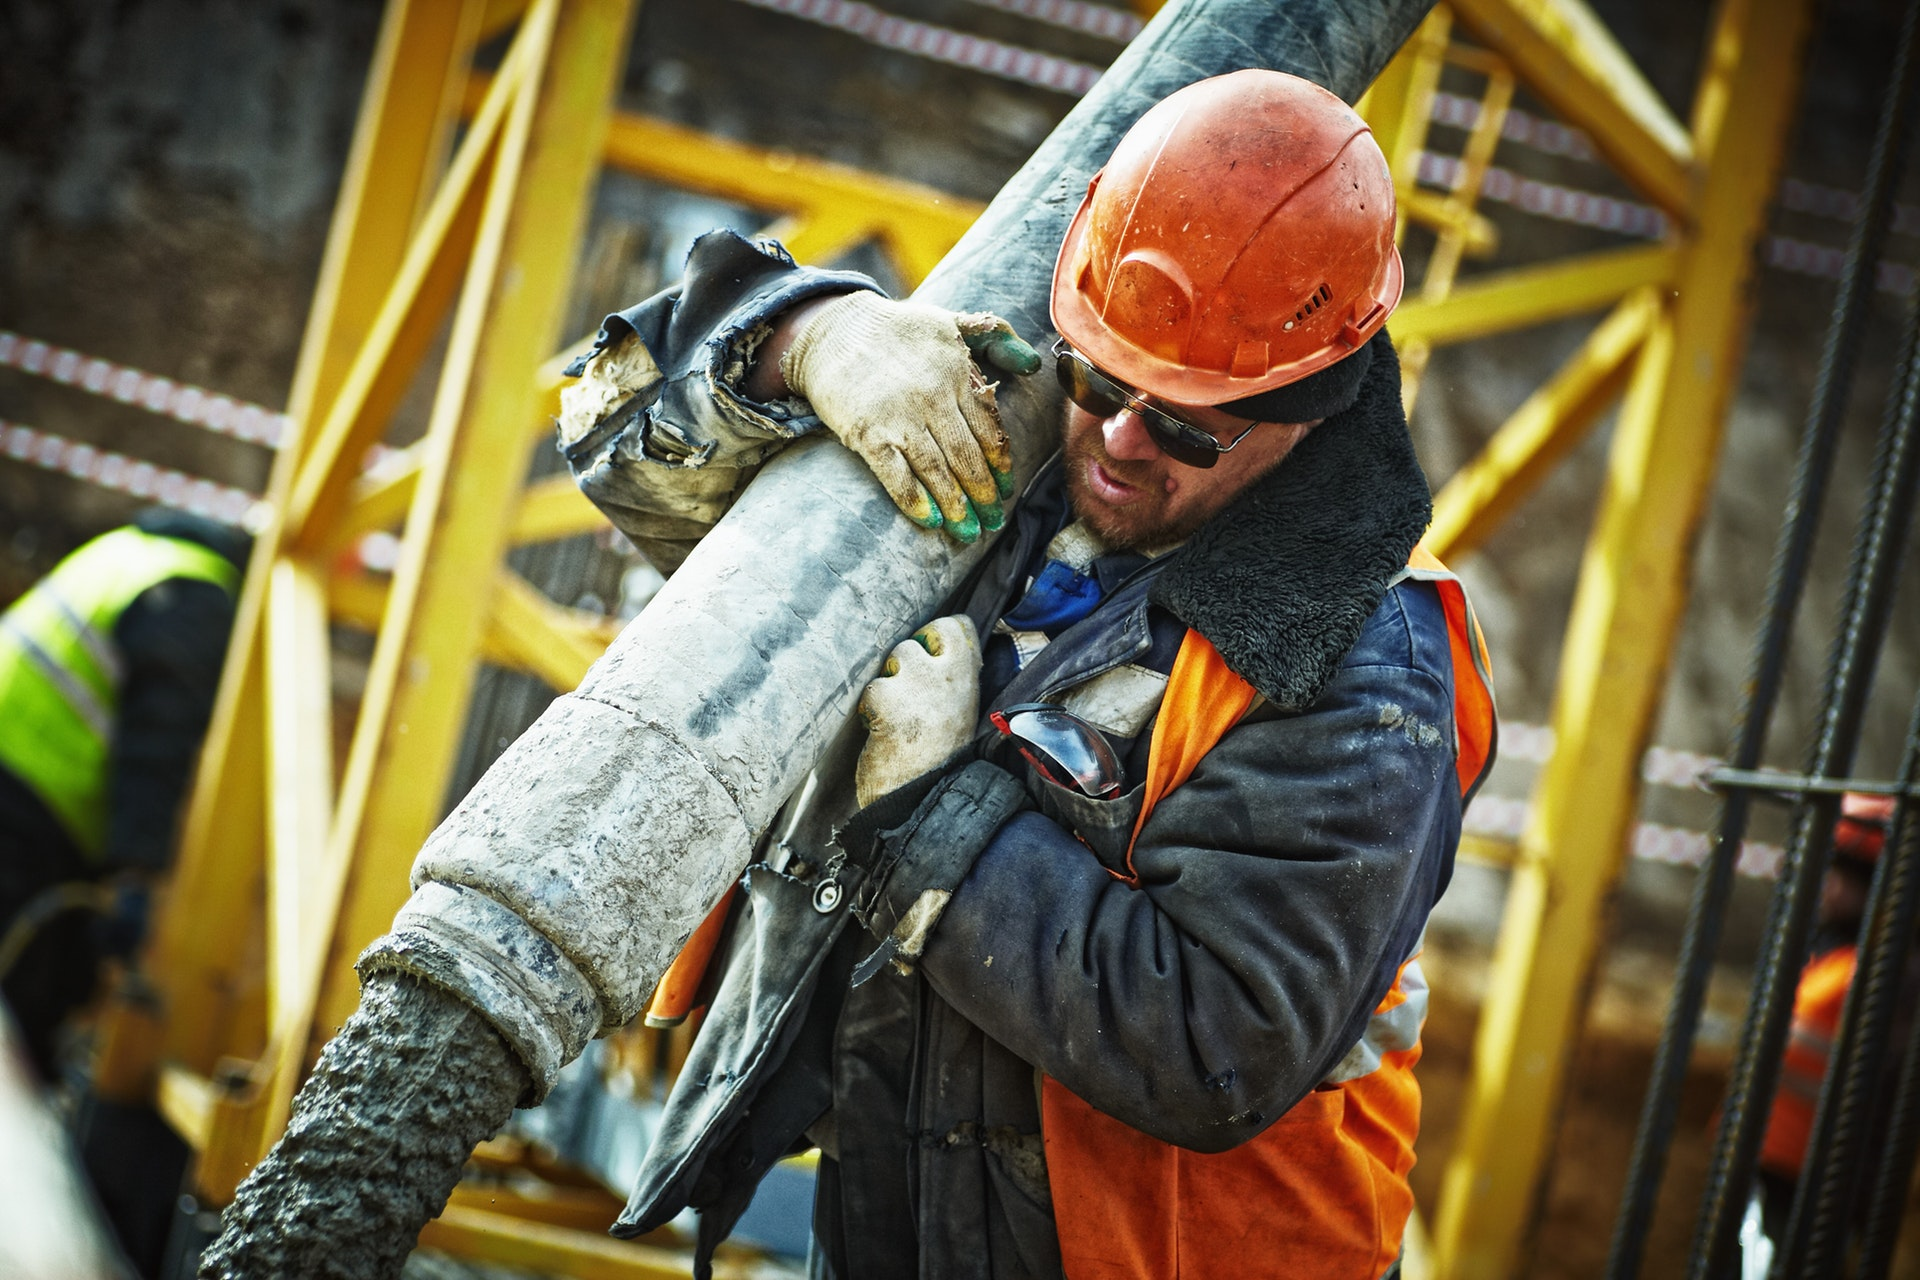 Photograph of a worker in an oil rig qhse